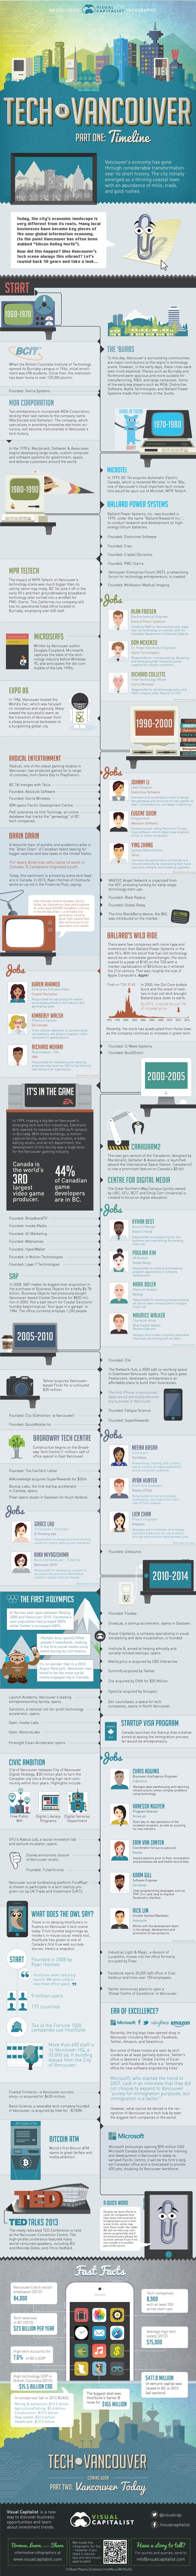 rsz_1vancouver_tech_history_infographic